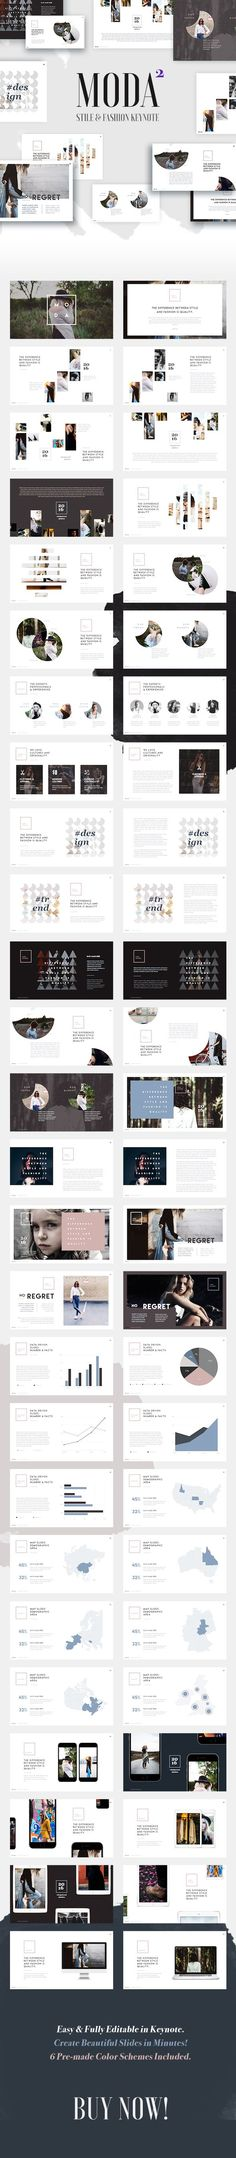 Buy Moda 2 - Fashion & Style Keynote Template by Slidehack on GraphicRiver. Whatever your presentation about, one thing's universal: you need a good looking, easy-to-understand visual presen. Web Design, Layout Design, Slide Design, Presentation Layout, Presentation Templates, Presentation Slides, Business Presentation, Fashion Portfolio Layout, Portfolio Design